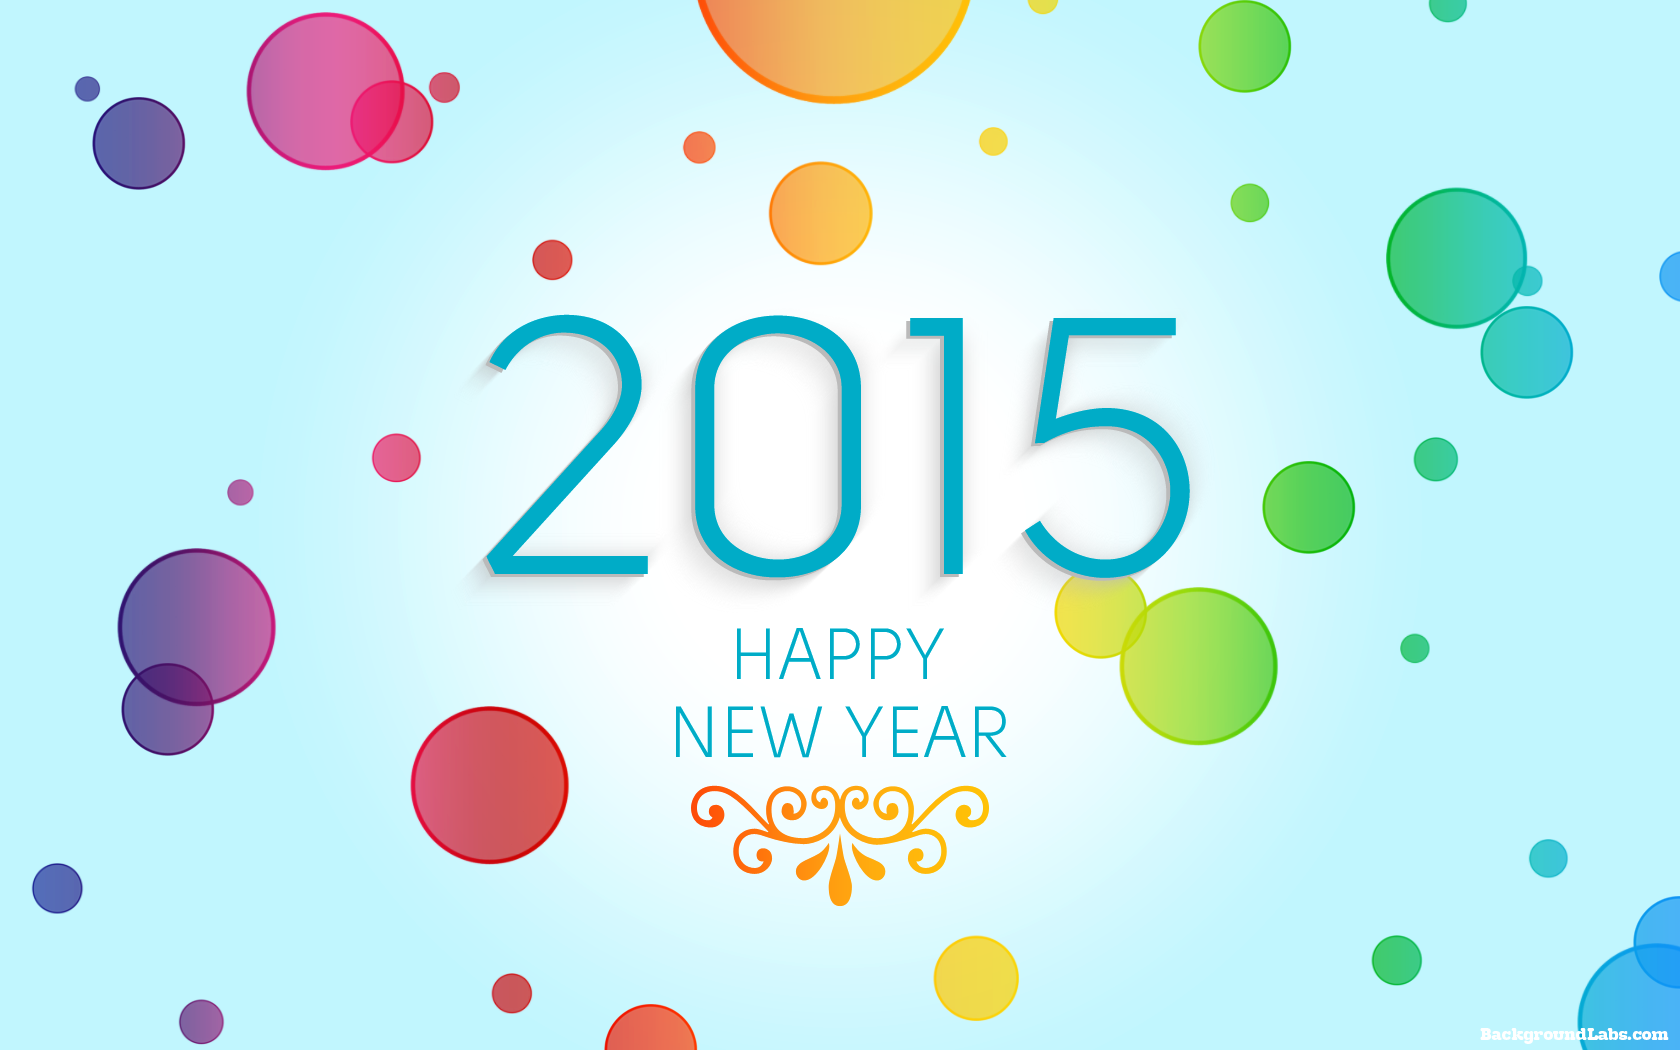 Happy New Year 2015 Png - 2015 Happy New Year Background - Background Labs